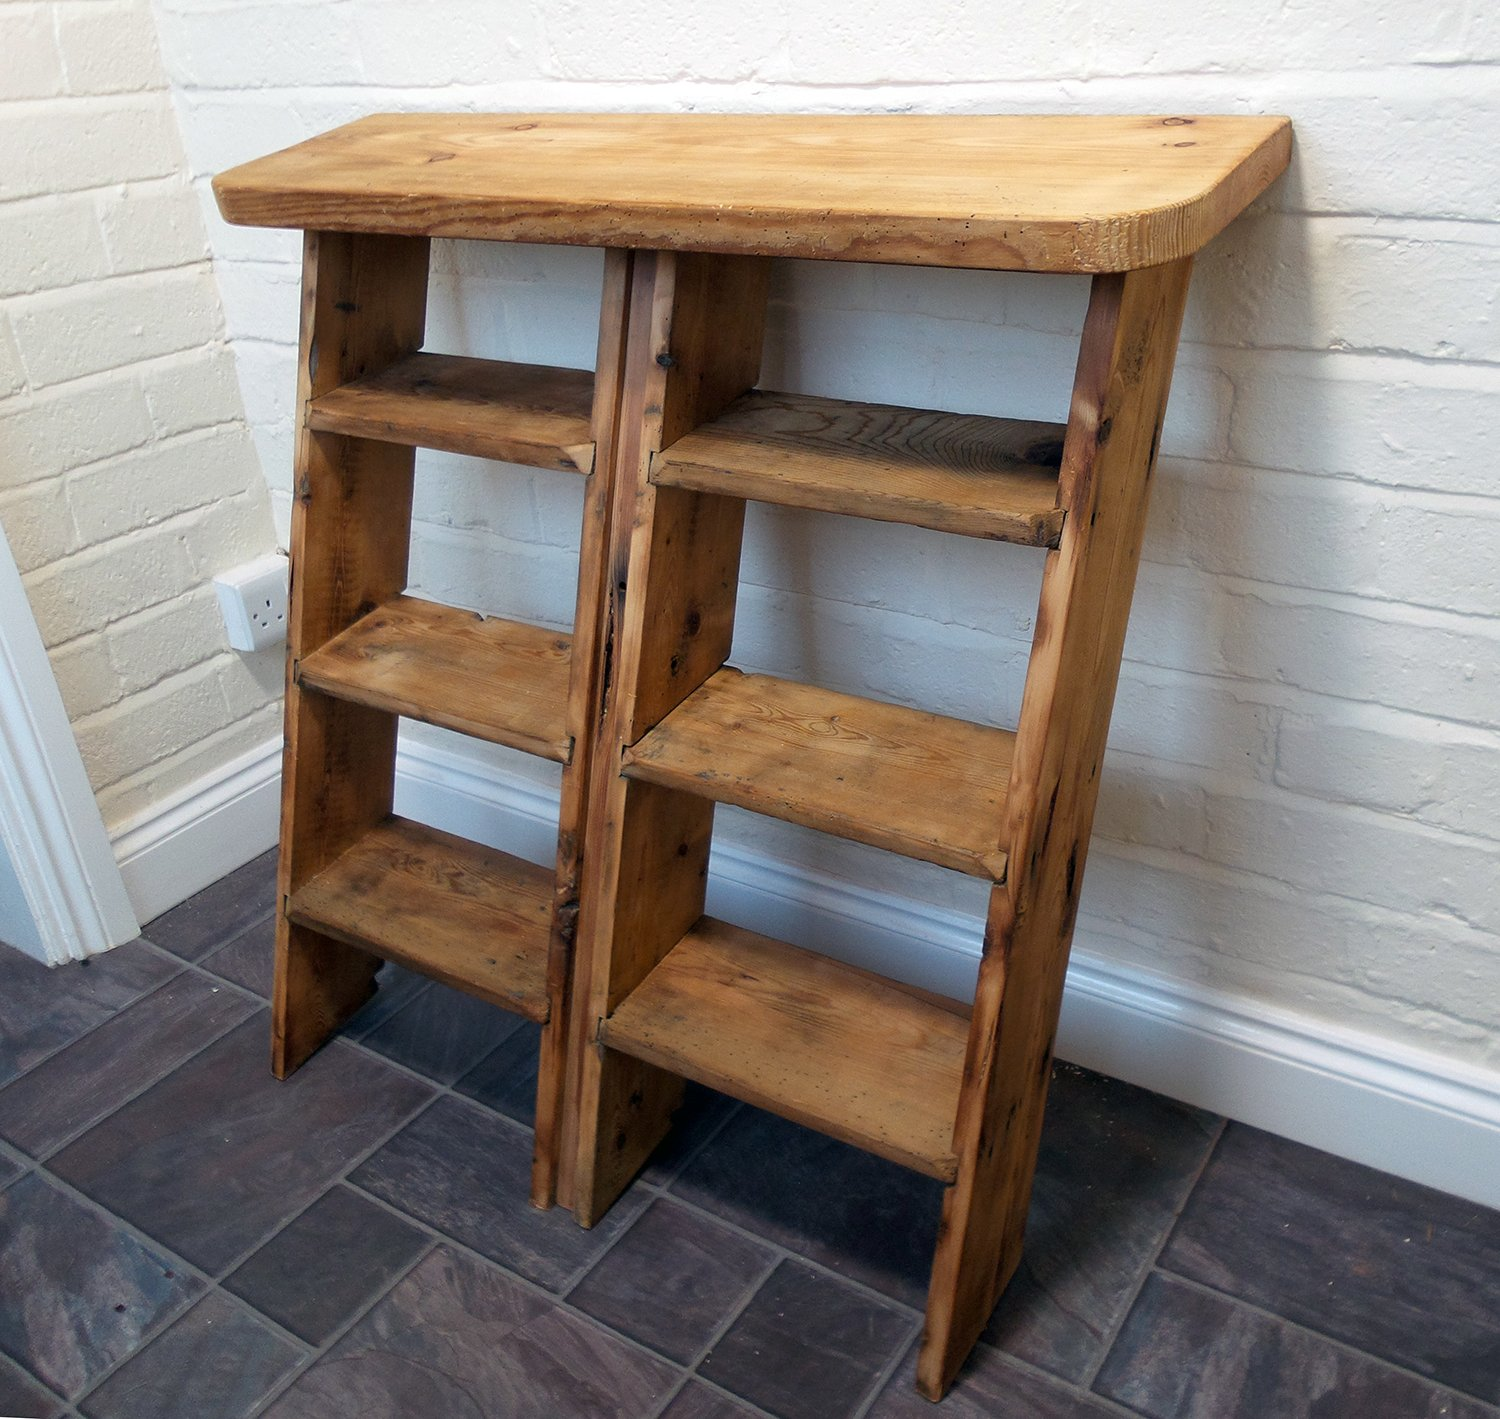 Shoe Rack Recycled from an Old Ladder (Making Furniture!)